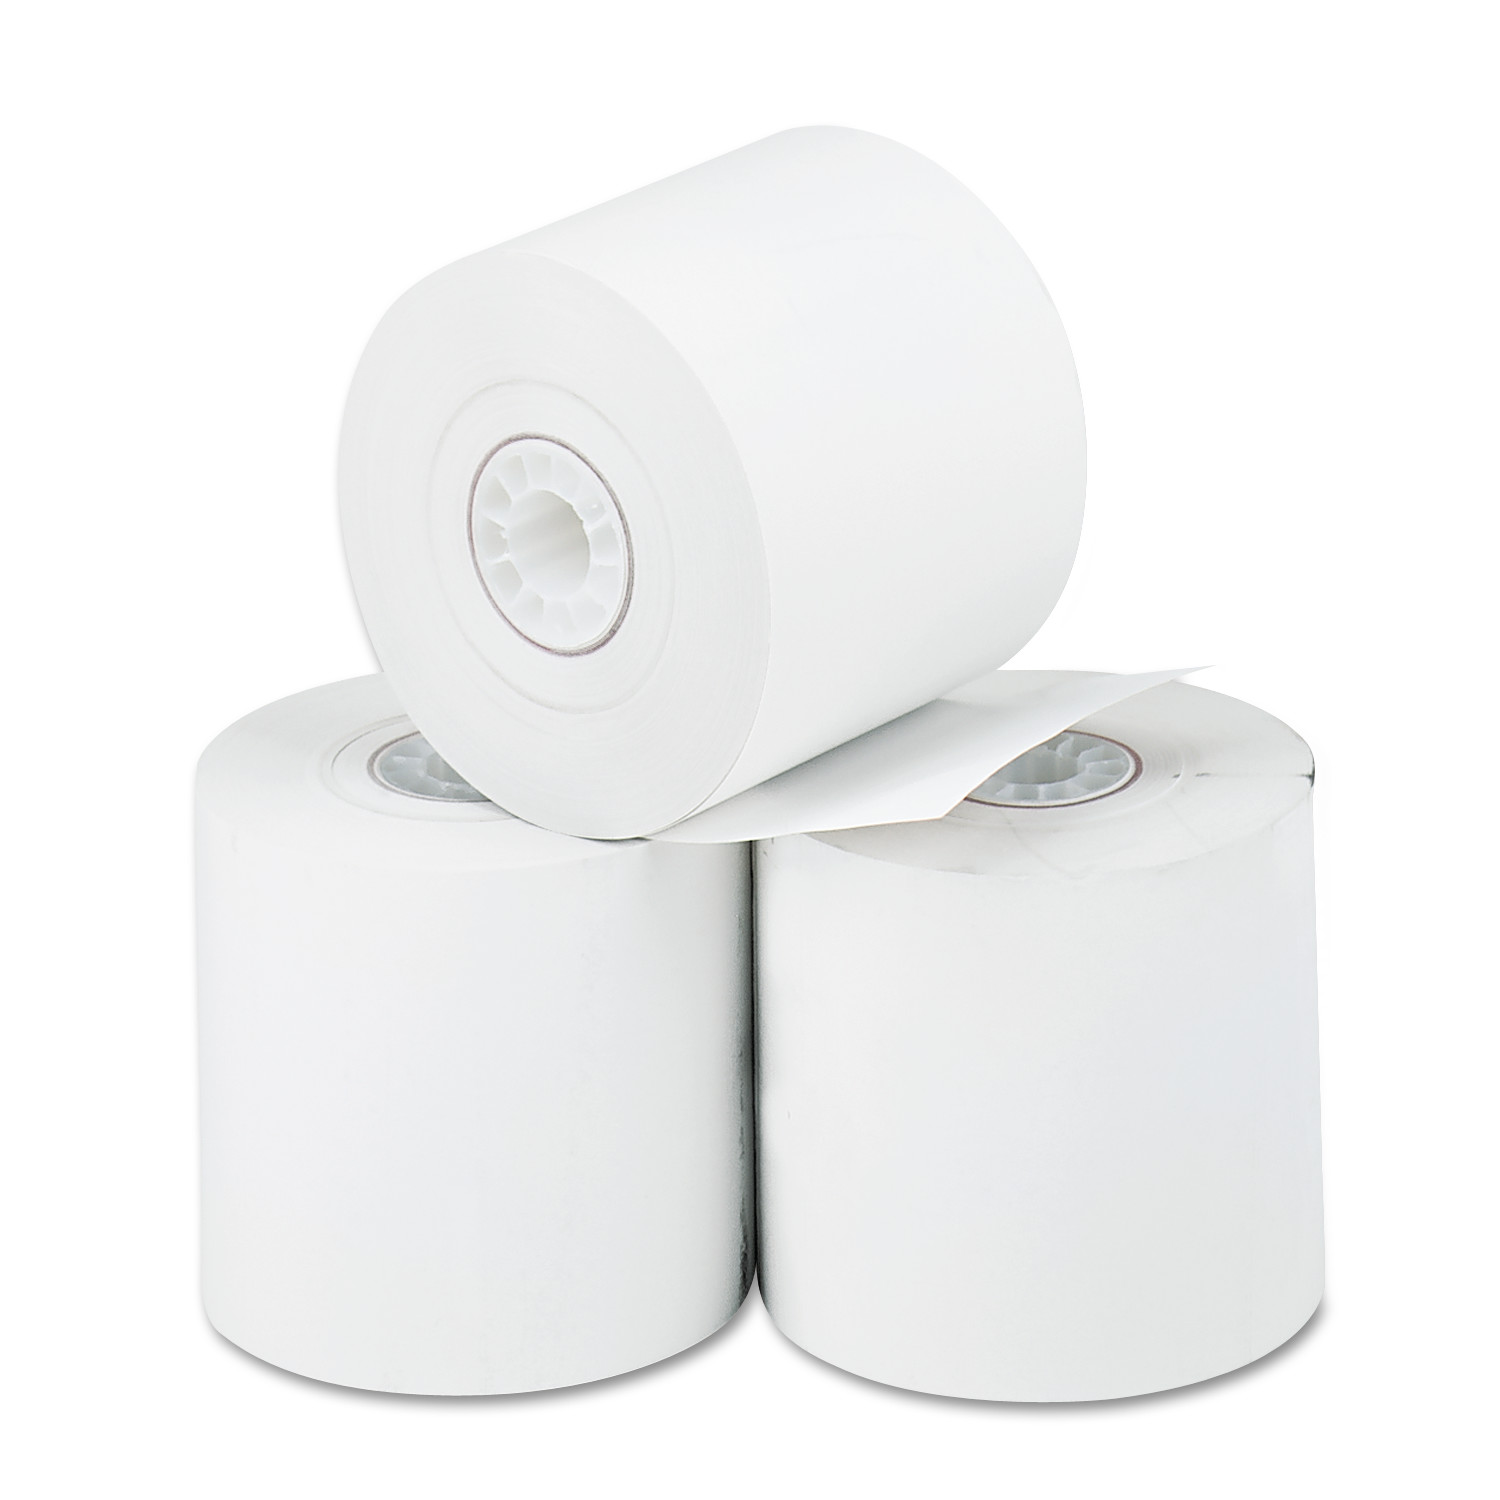 "Thermal Paper Rolls for Cash Registers/Calculators, 2 1/4"" x 165 ft, 3-Pack"